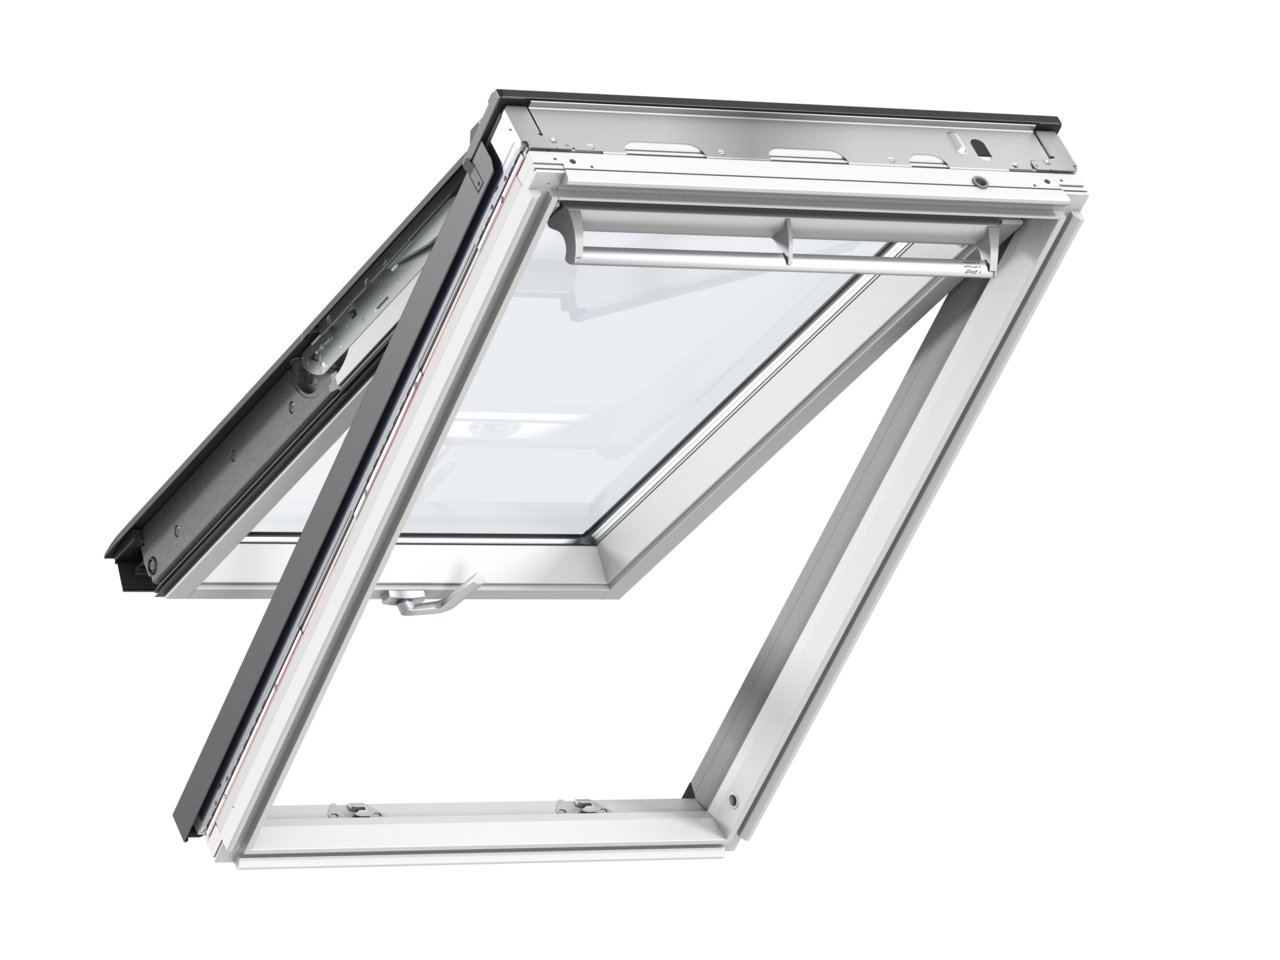 Velux GPL CK06 550 x 1180mm Top Hung 66Pane Roof Window - White Painted